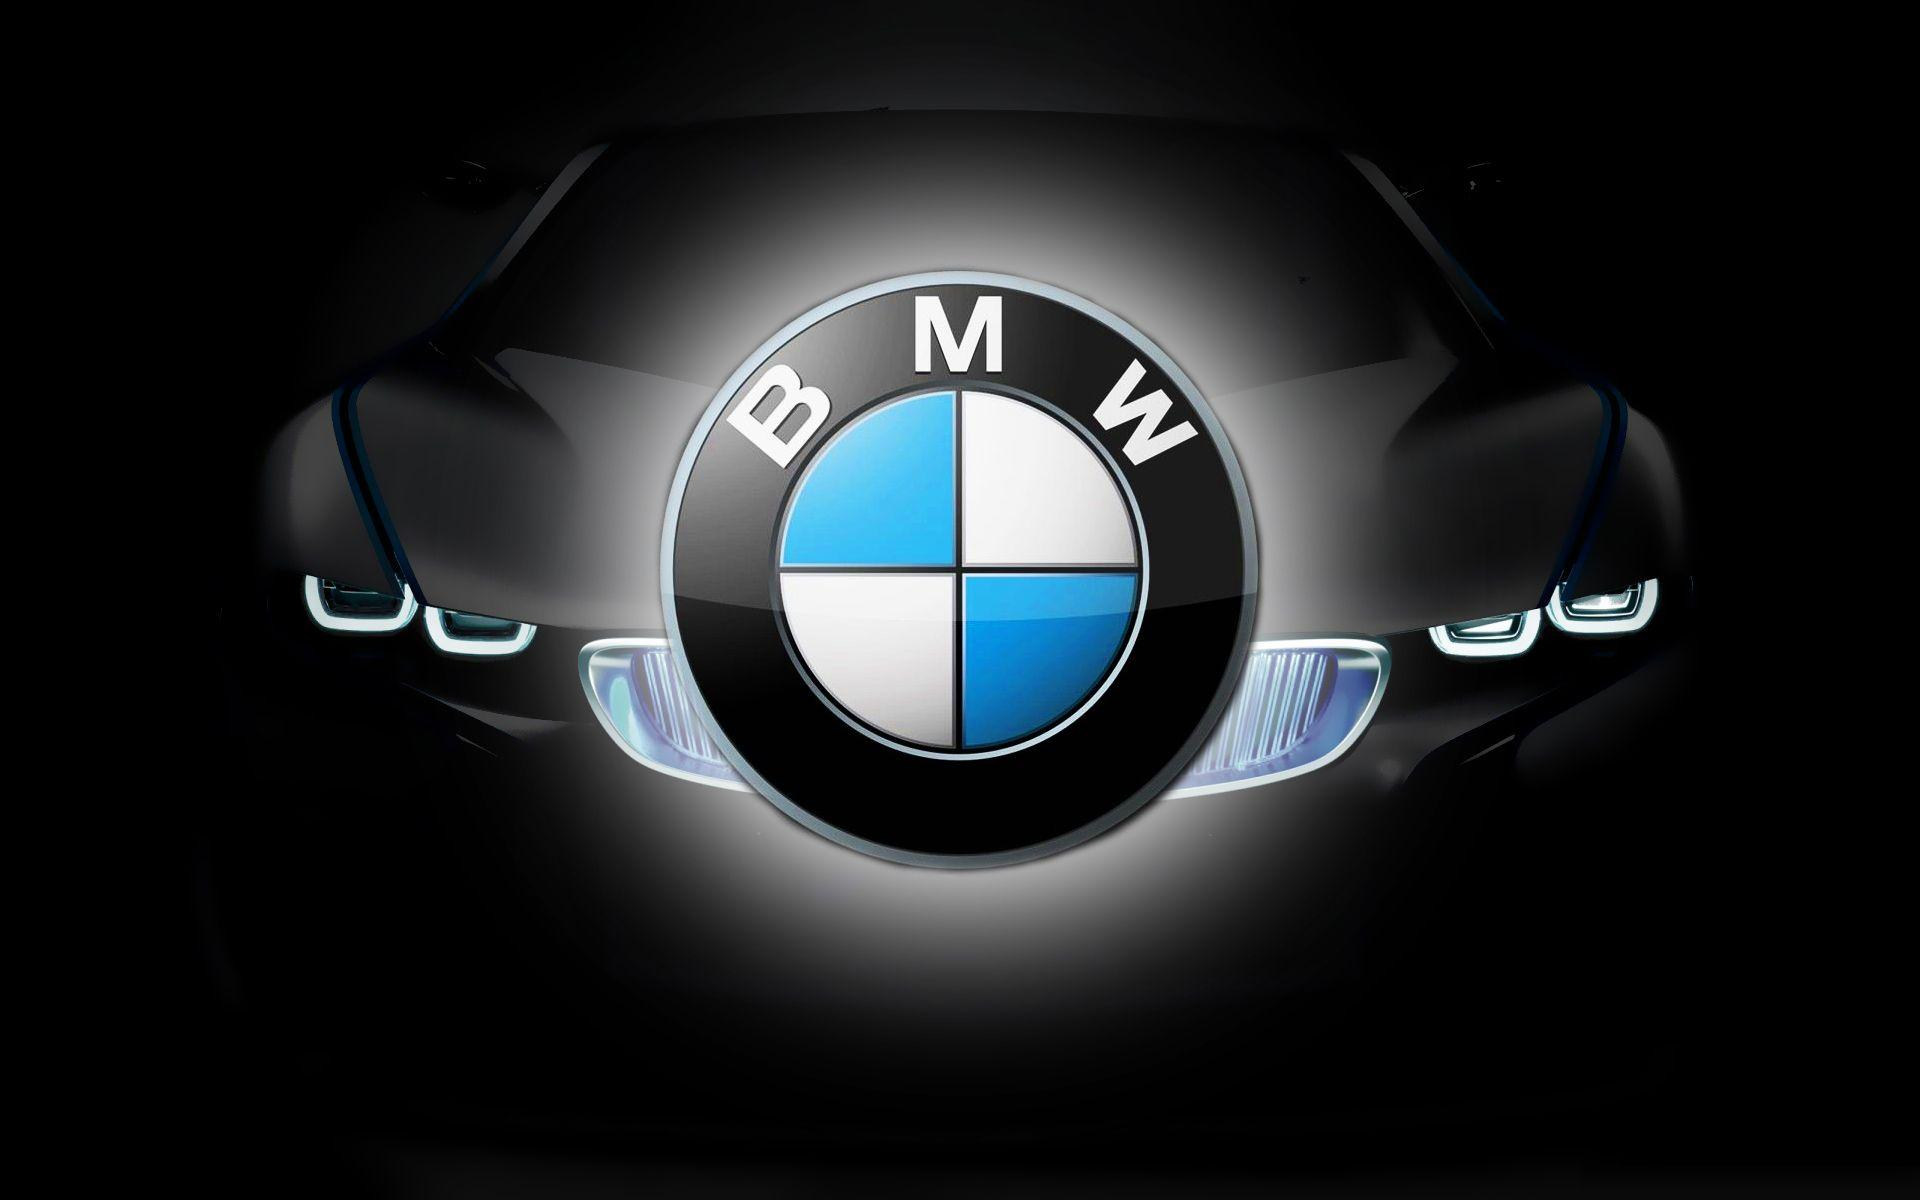 BMW to reveal its blockchain supply chain solution in 2020